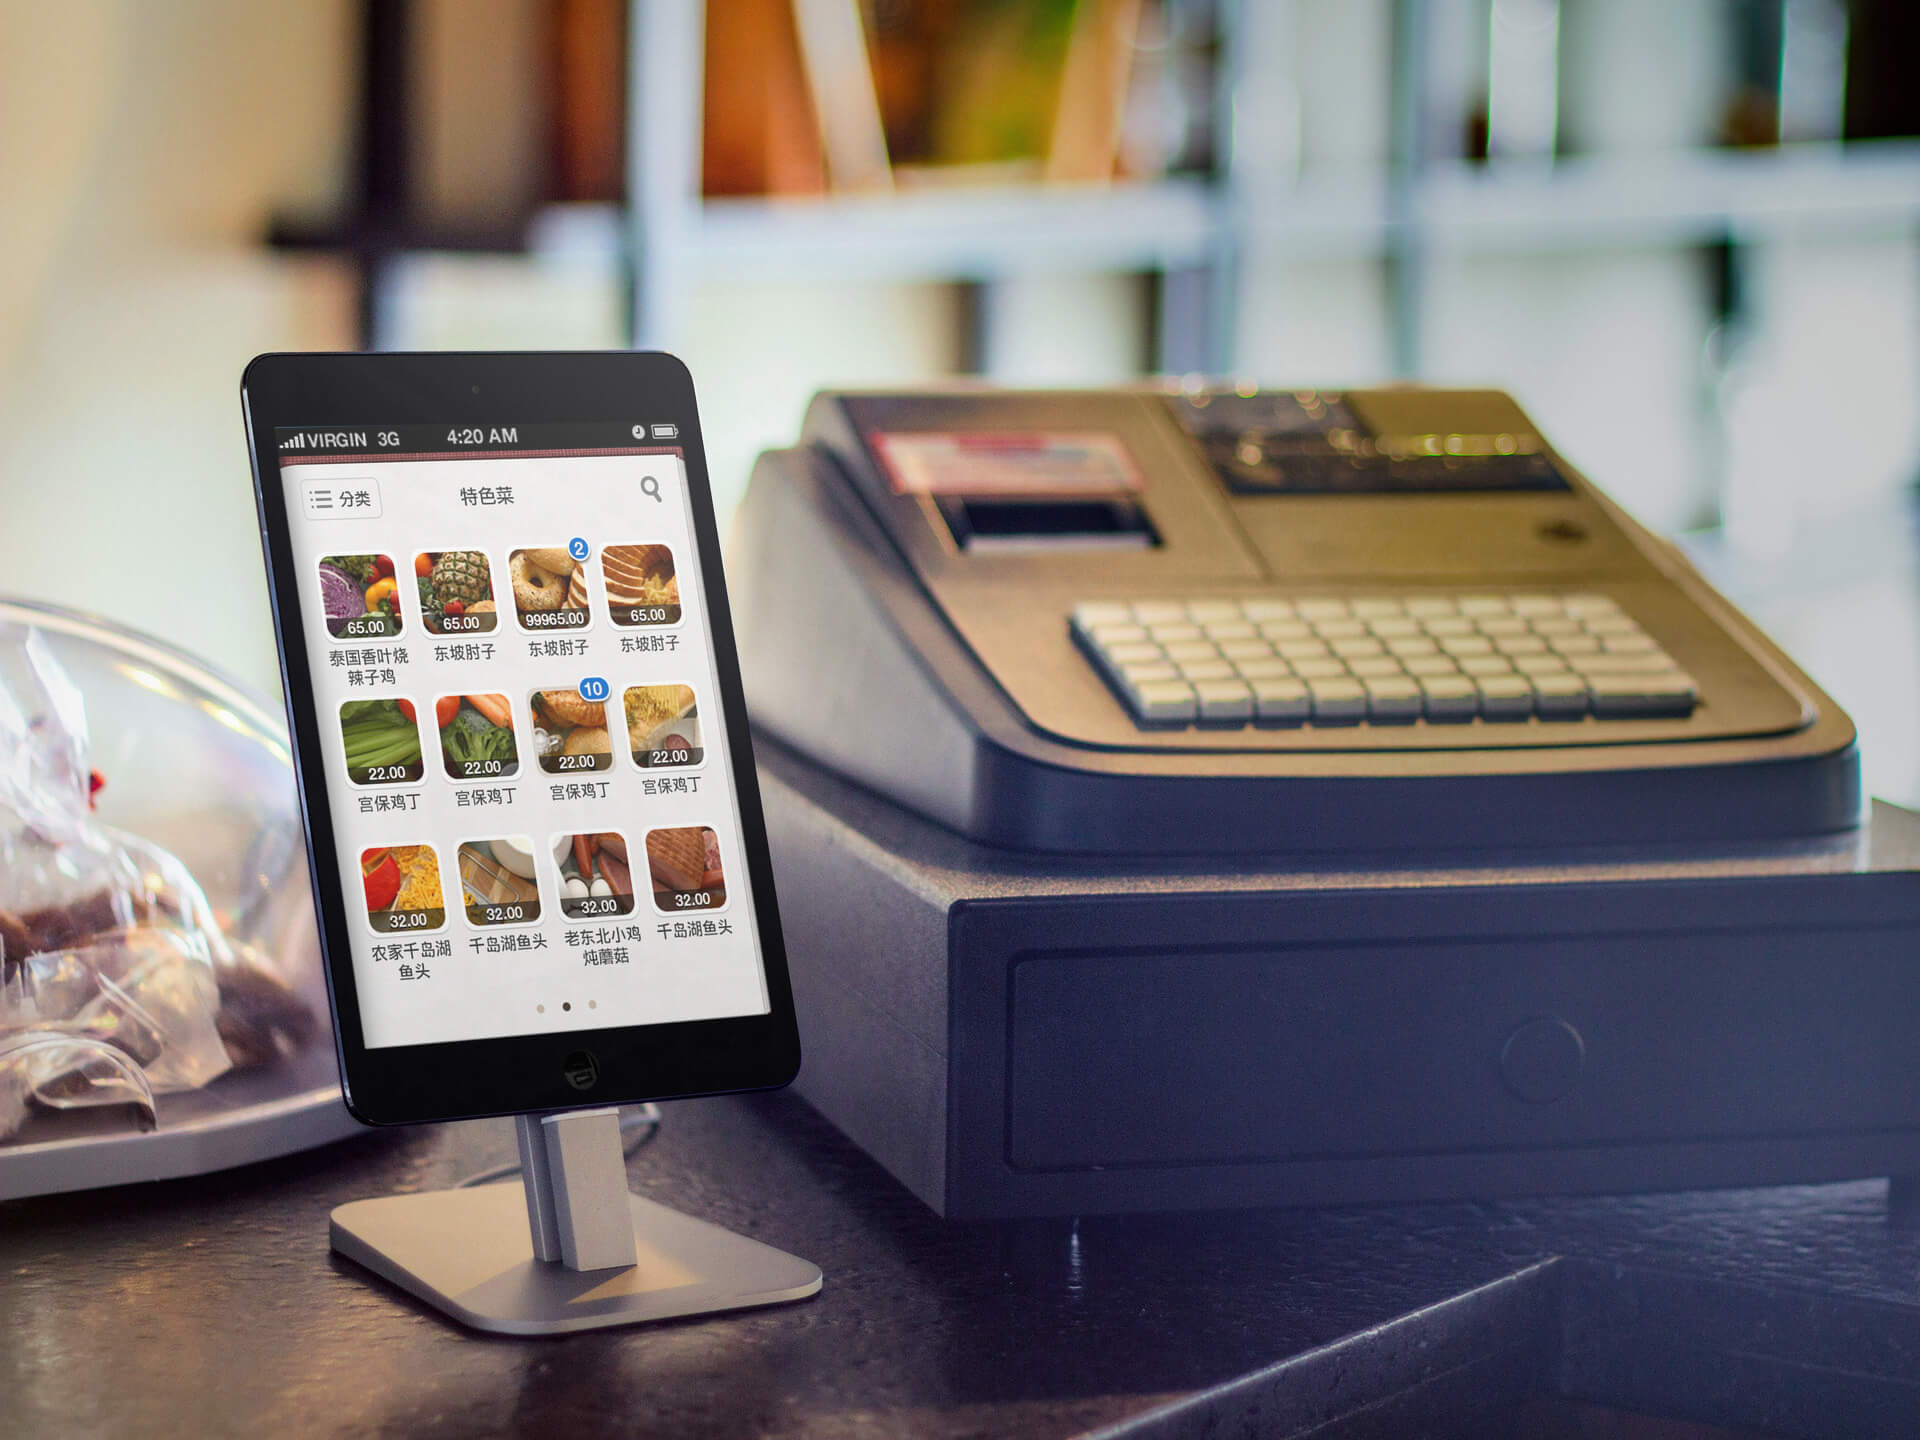 Tablet Mockup Next to a Cash Register Featuring a Grocery App